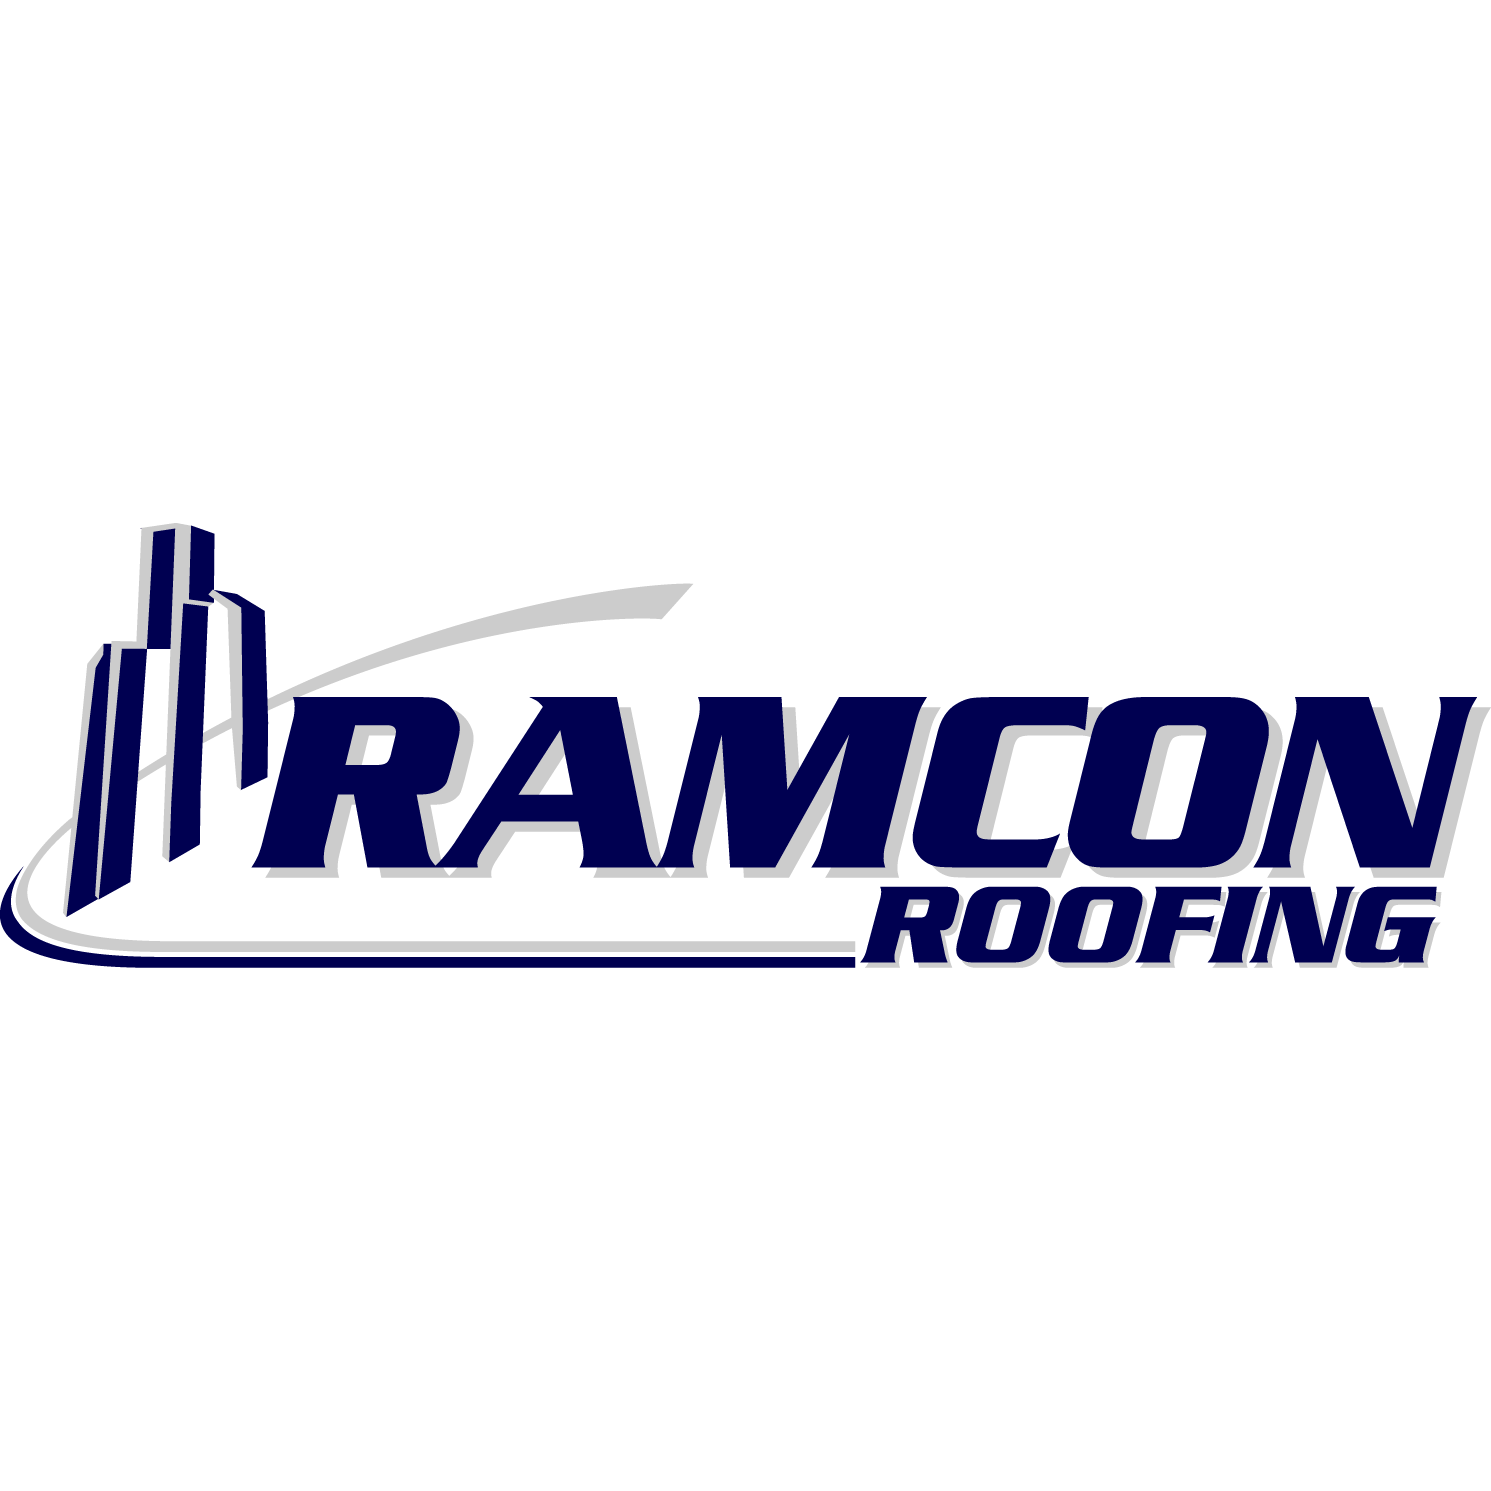 RAMCON Roofing - Tampa, FL - Telecommunications Services